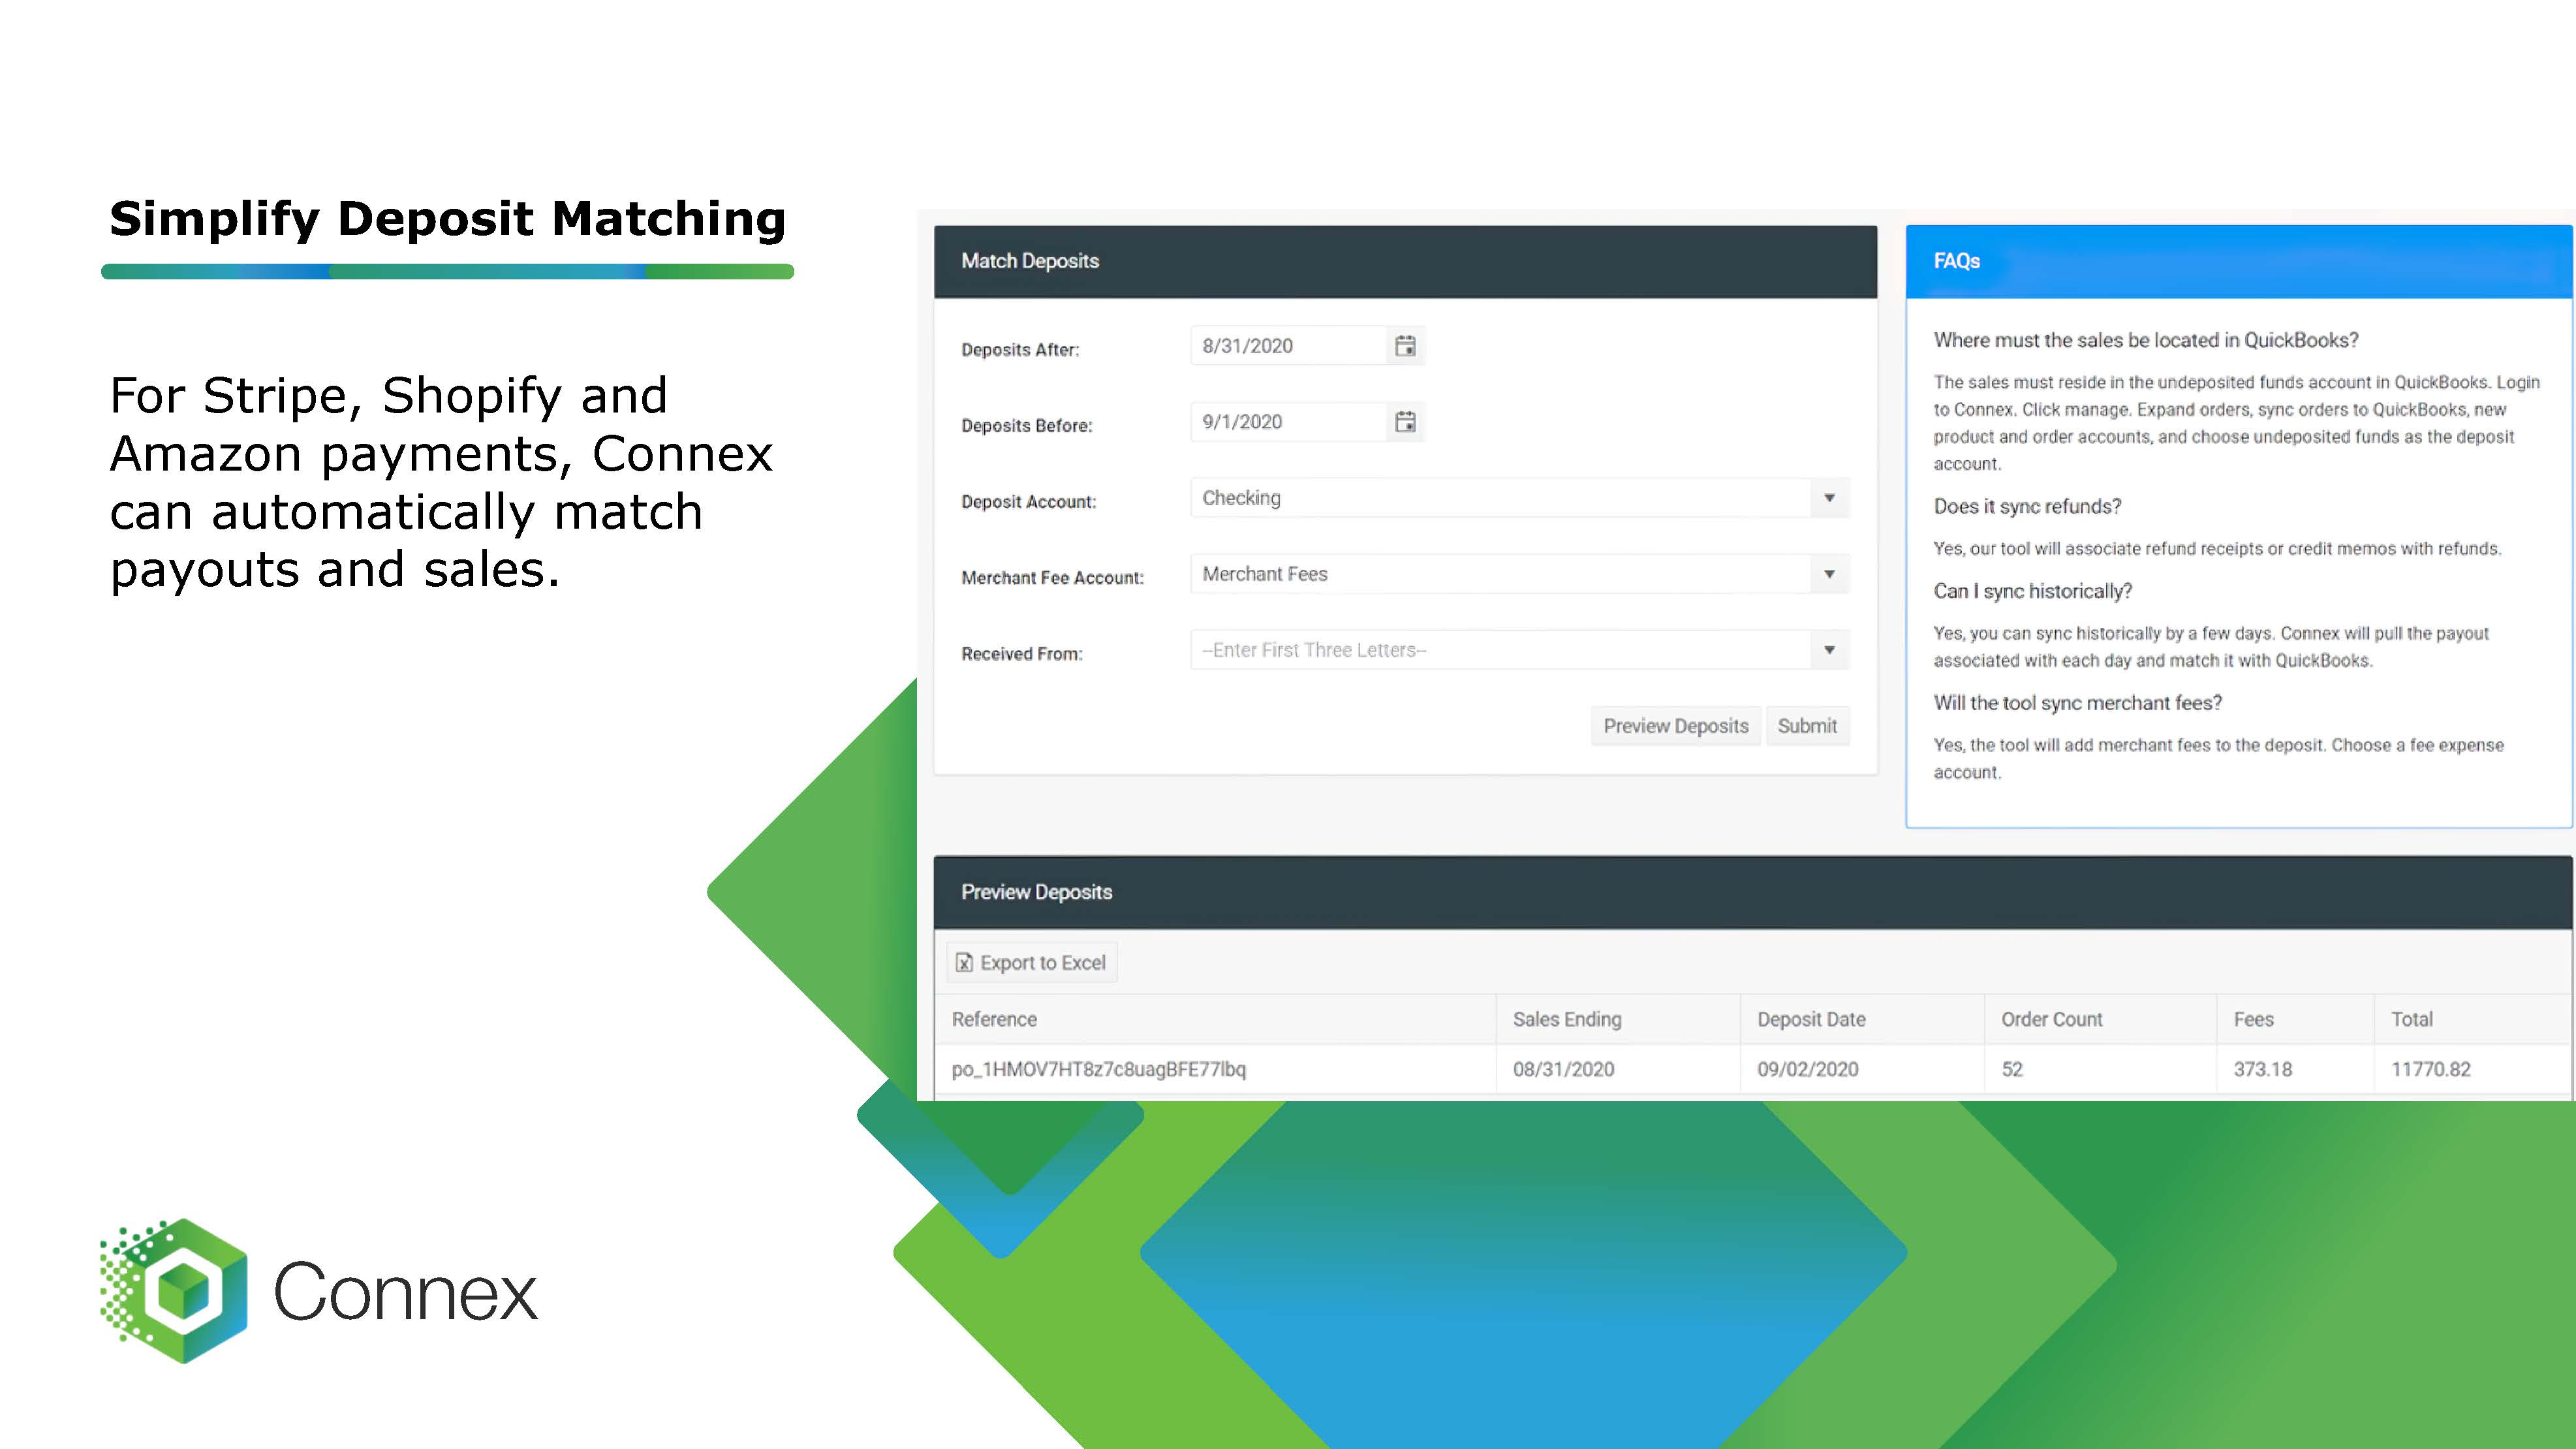 Automate matching deposits with your online payouts